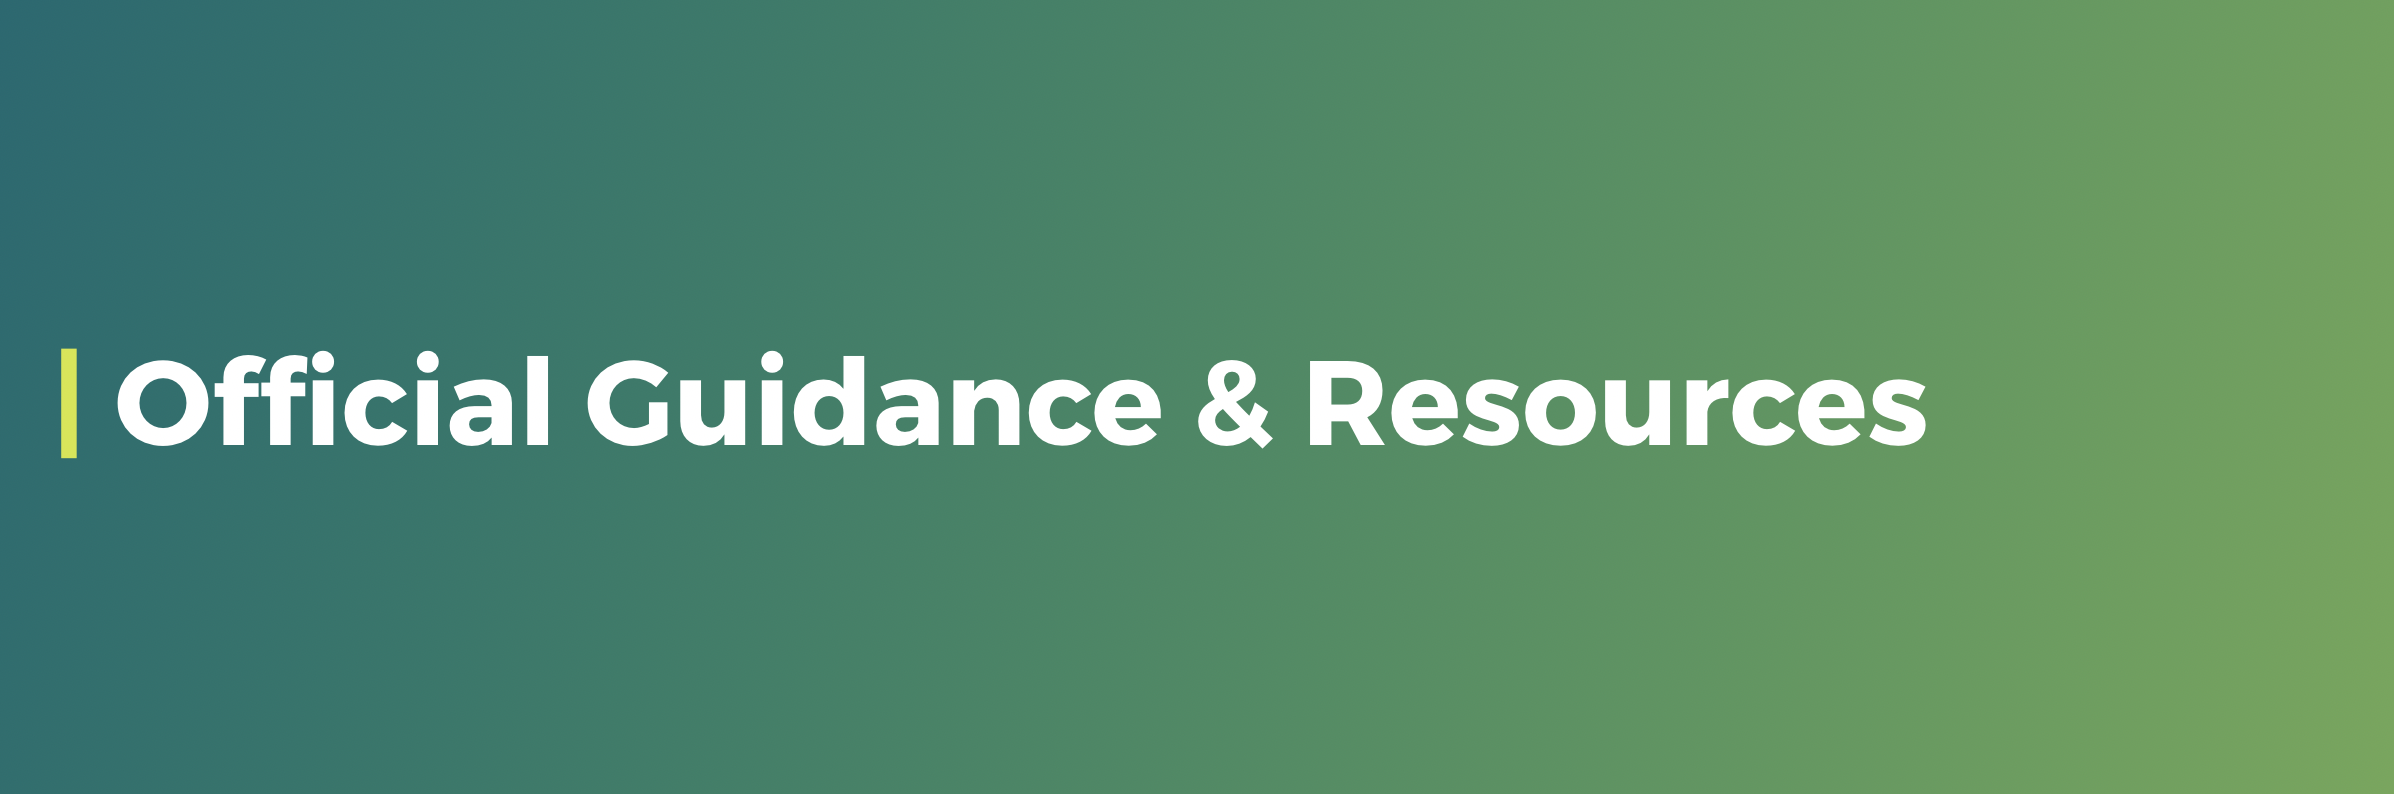 official guidance and resources